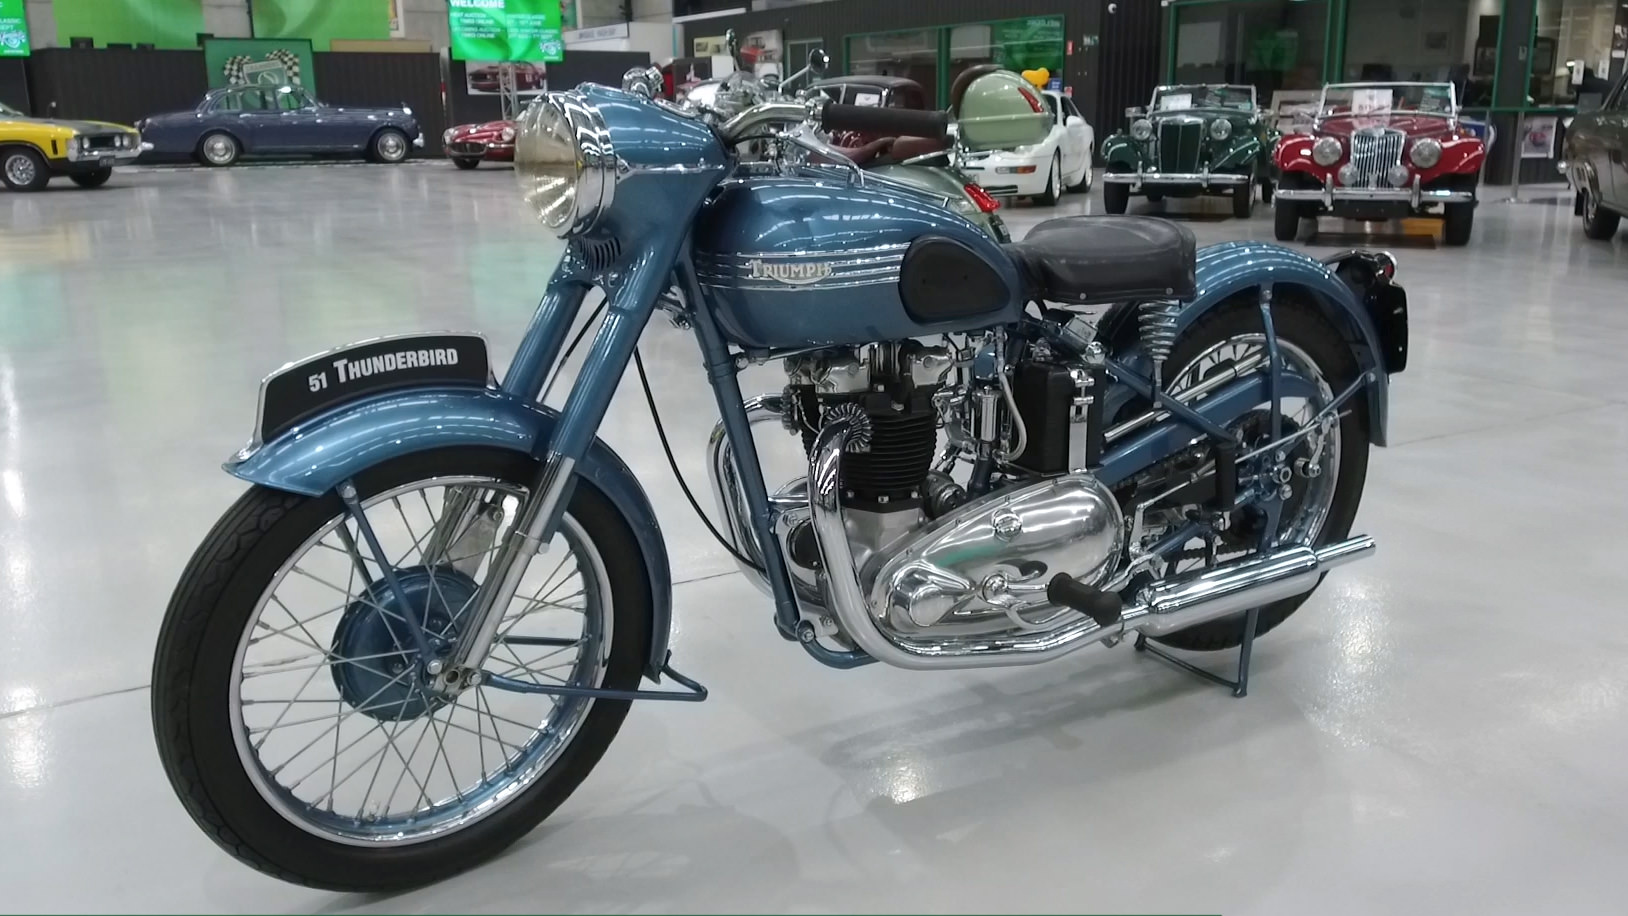 1951 Triumph Thunderbird 650cc Motorcycle - 2021 Shannons Winter Timed Online Auction